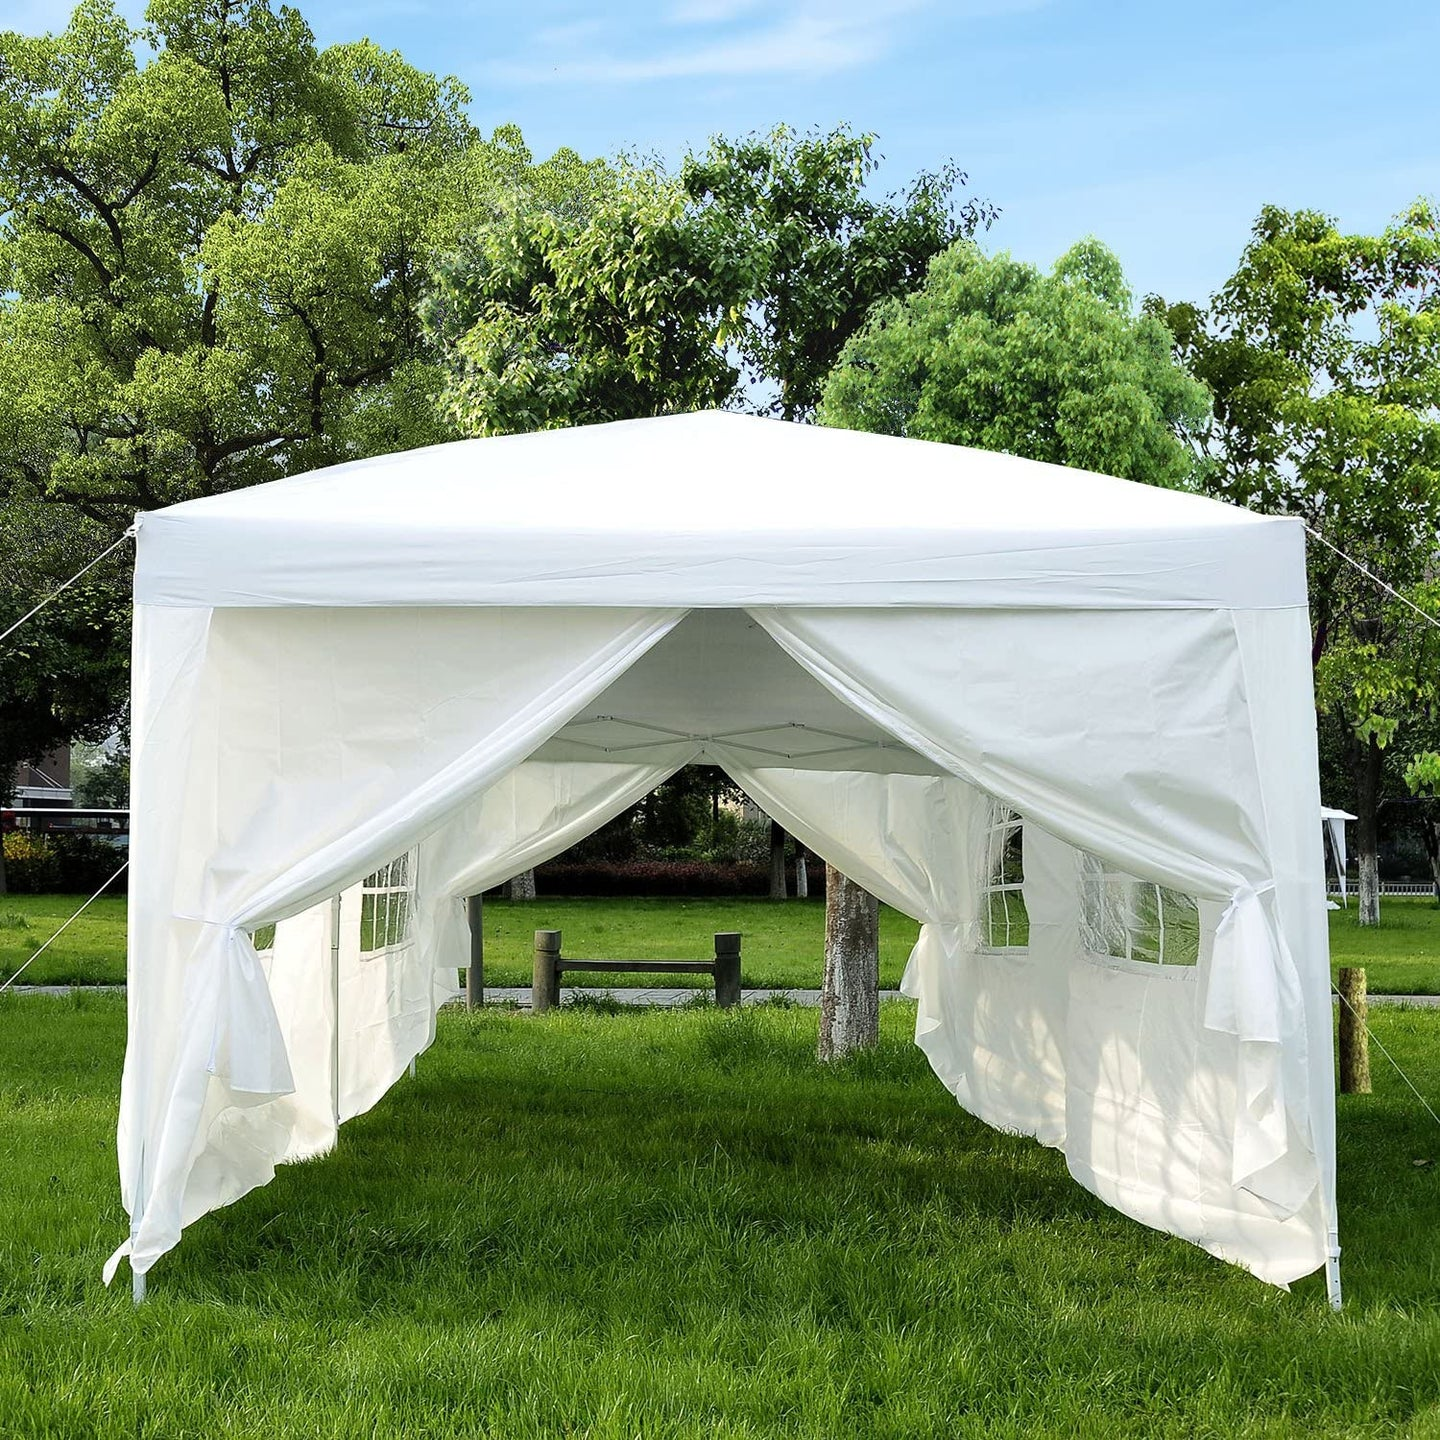 Outsunny Pop Up Gazebo Marquee, size(6m x 3m)-White